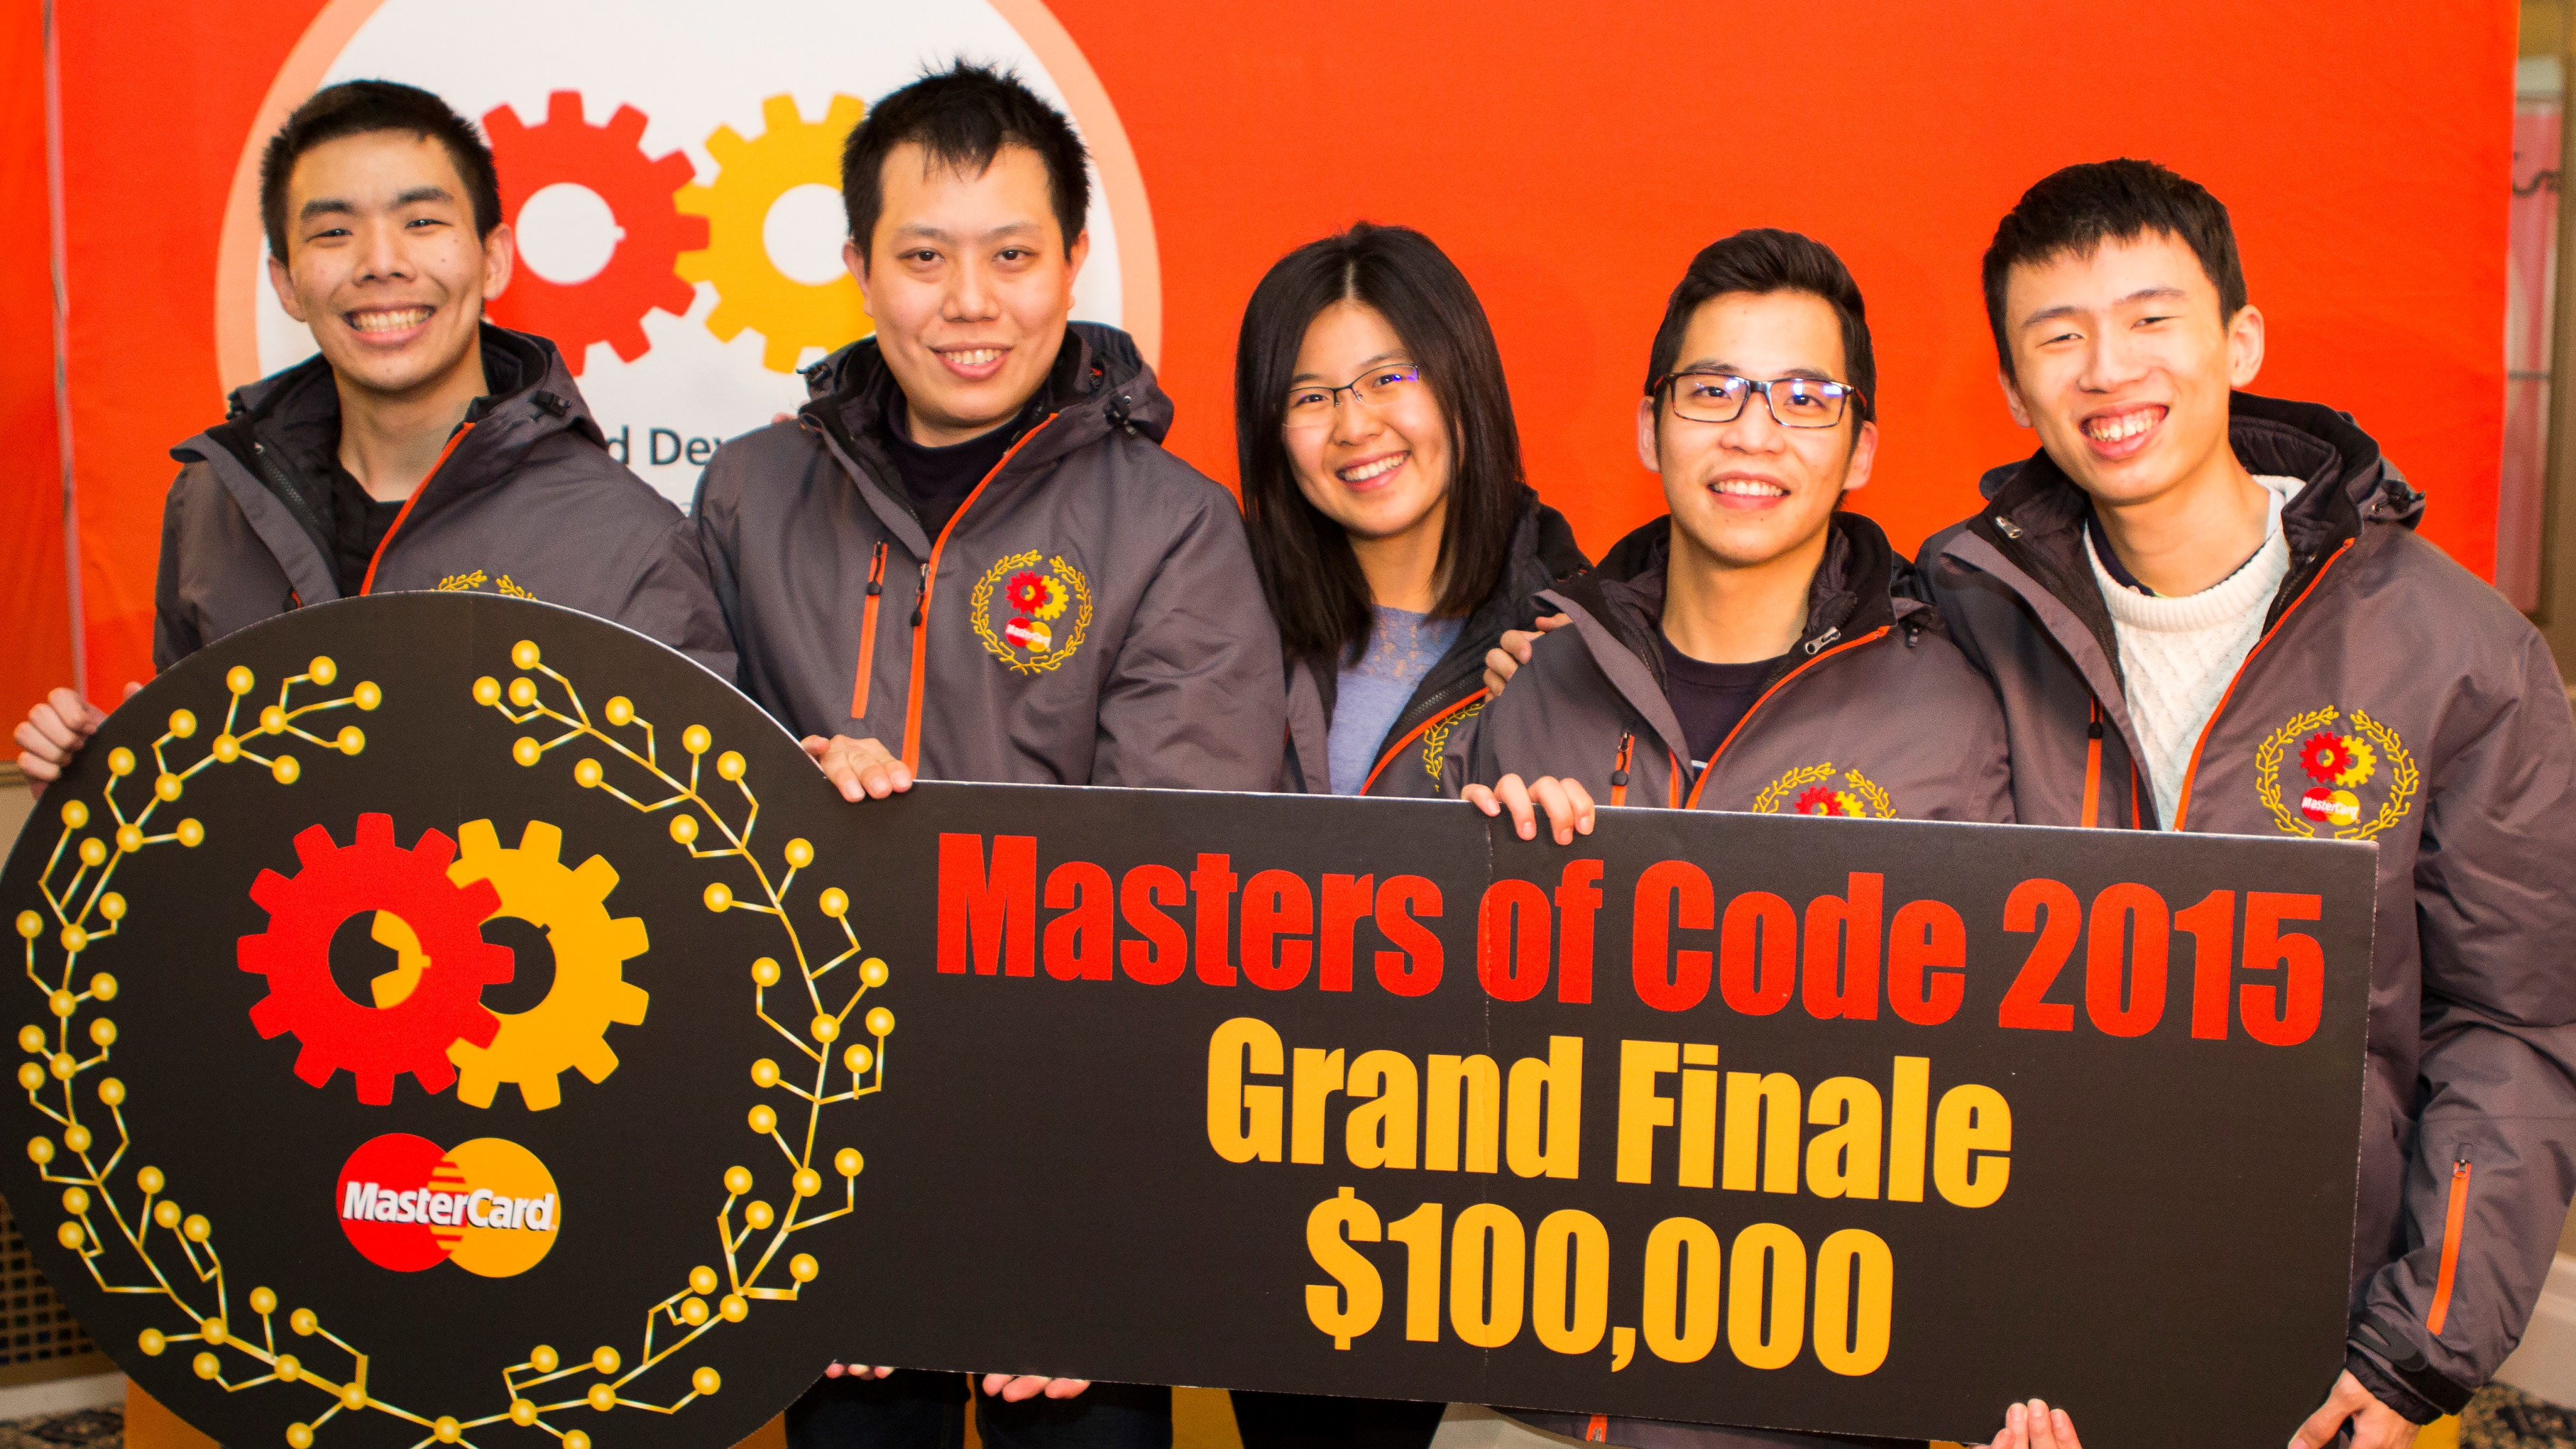 Masters of Code 2015 (resized)